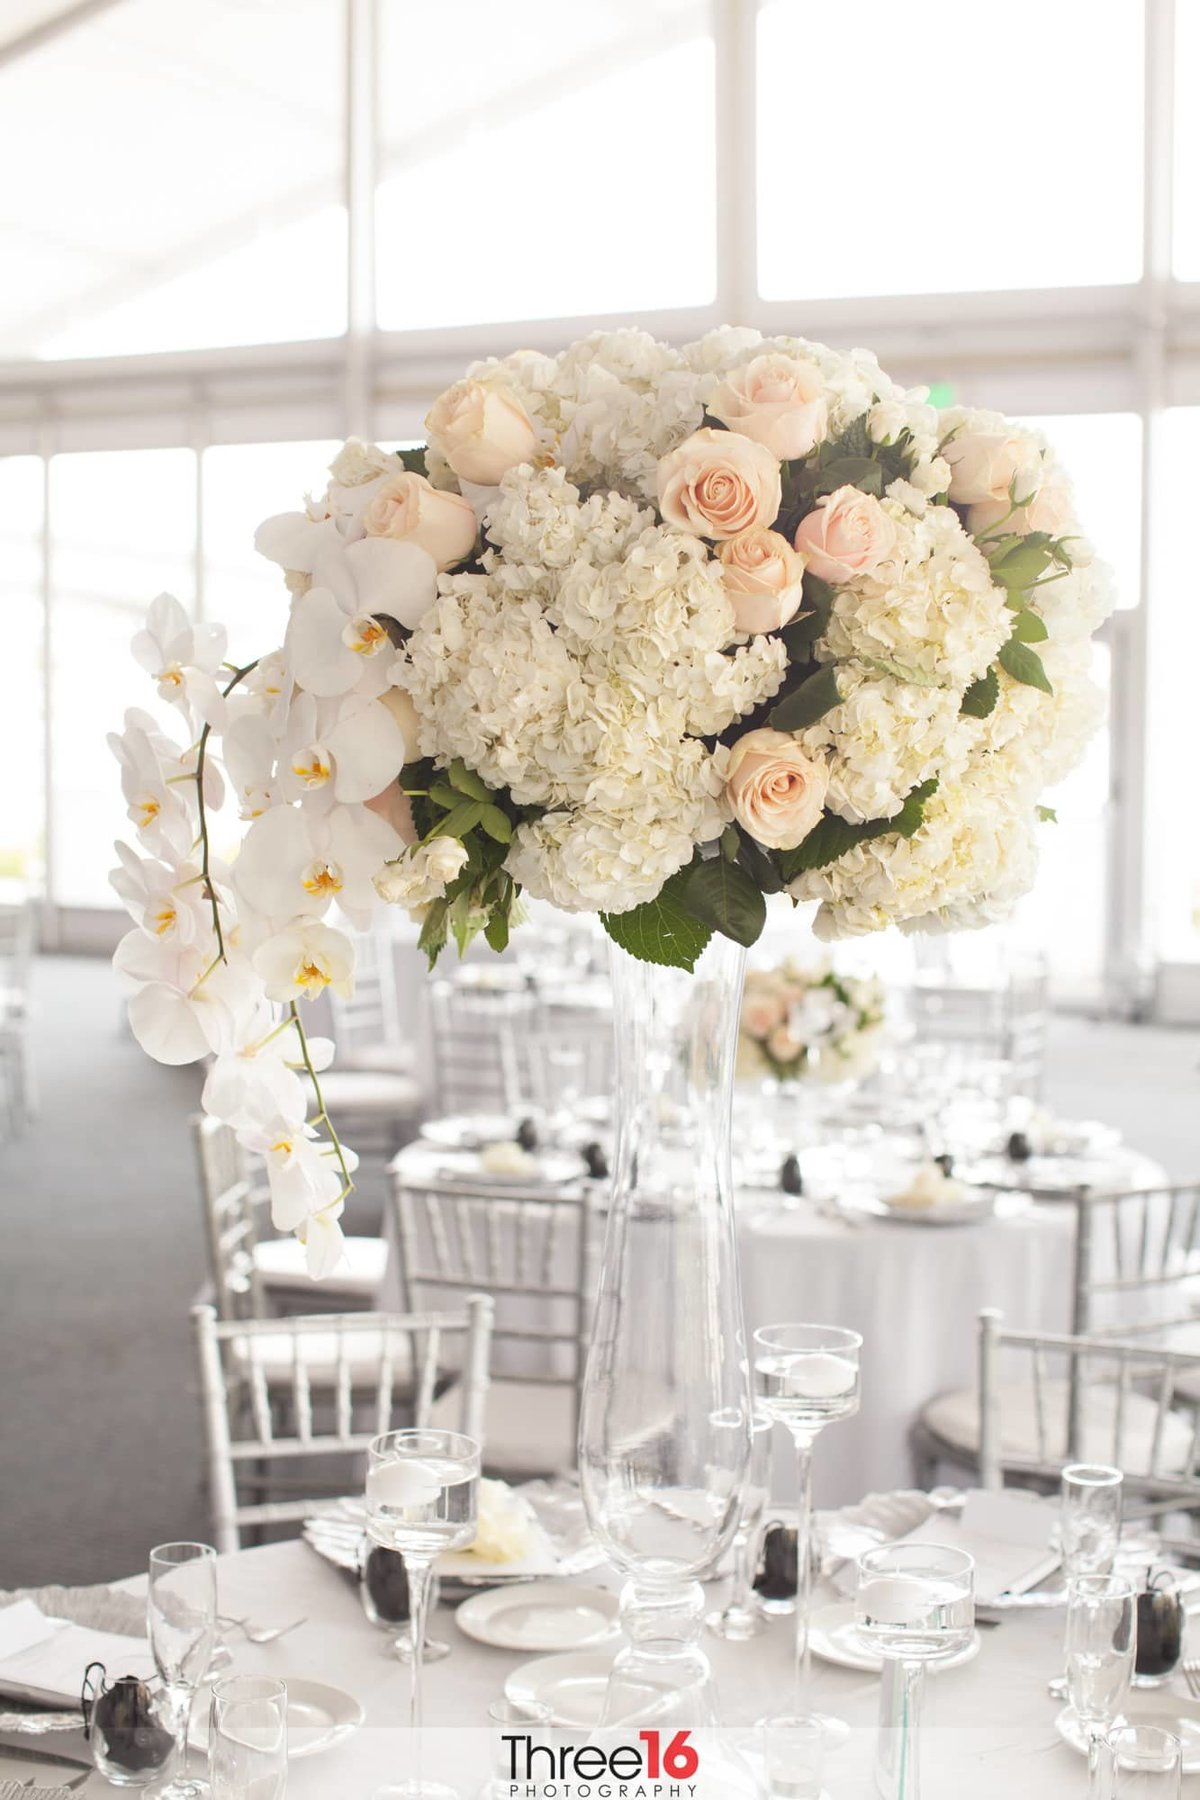 Centerpiece for wedding reception table